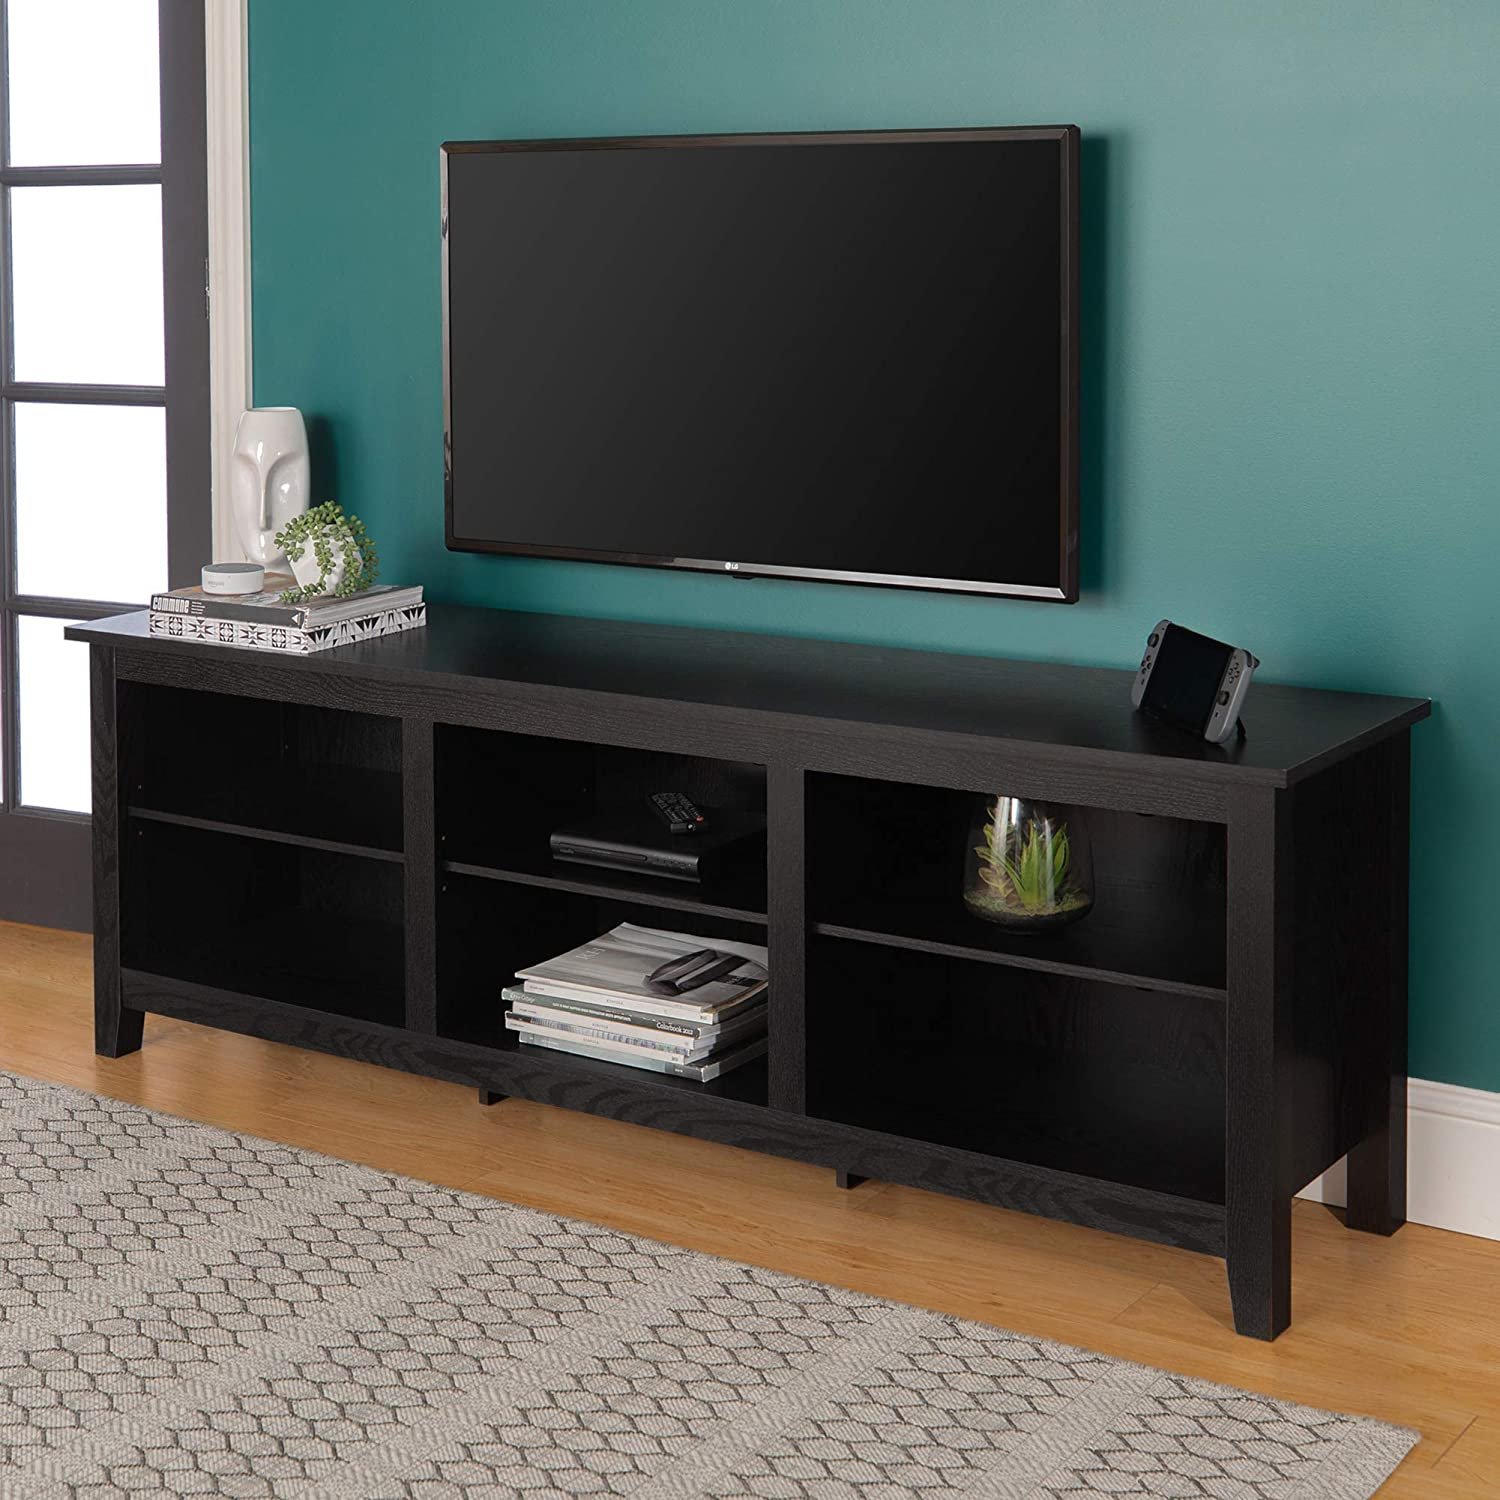 Large Black TV Console Entertainment Center